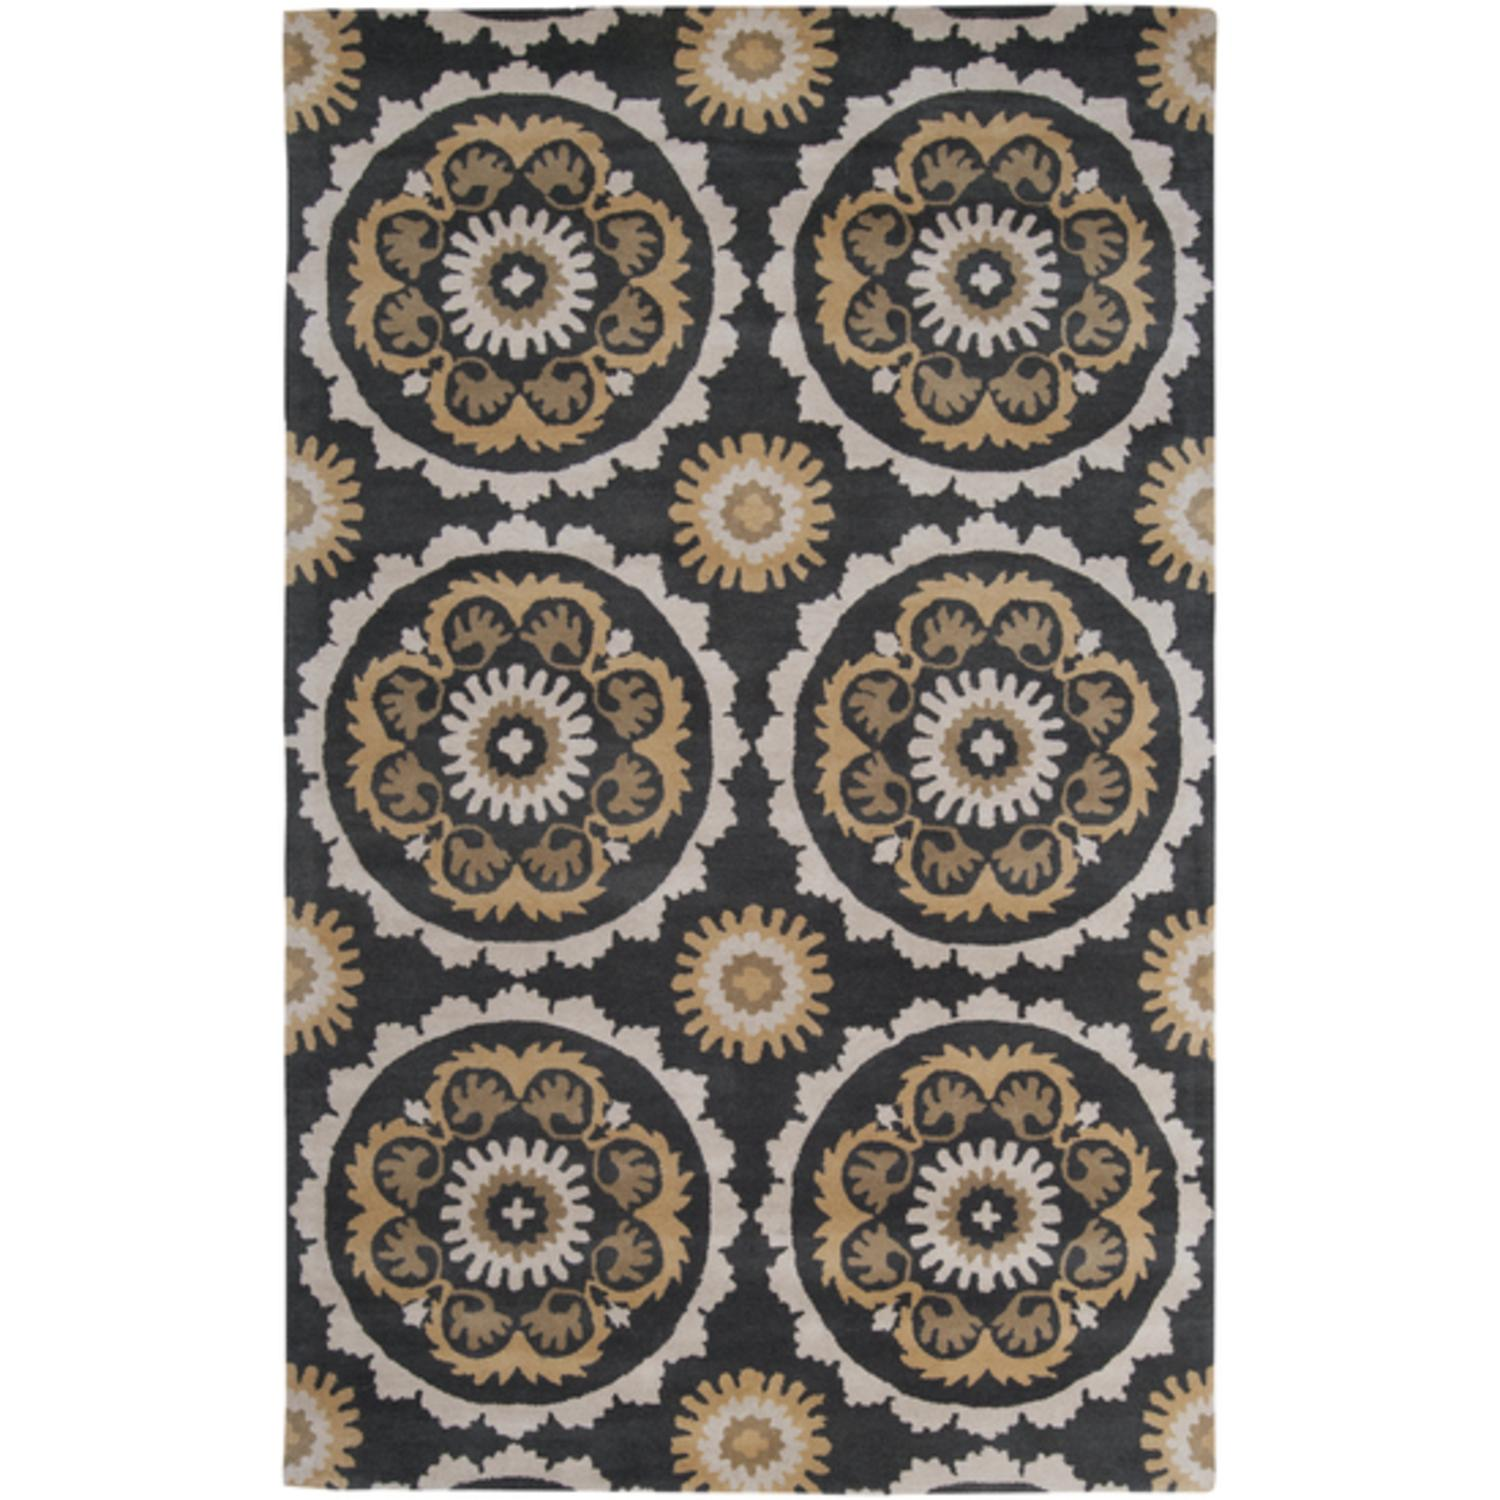 5' x 8' Glowing Paradise Black Olive and Safari Tan Wool Area Throw Rug